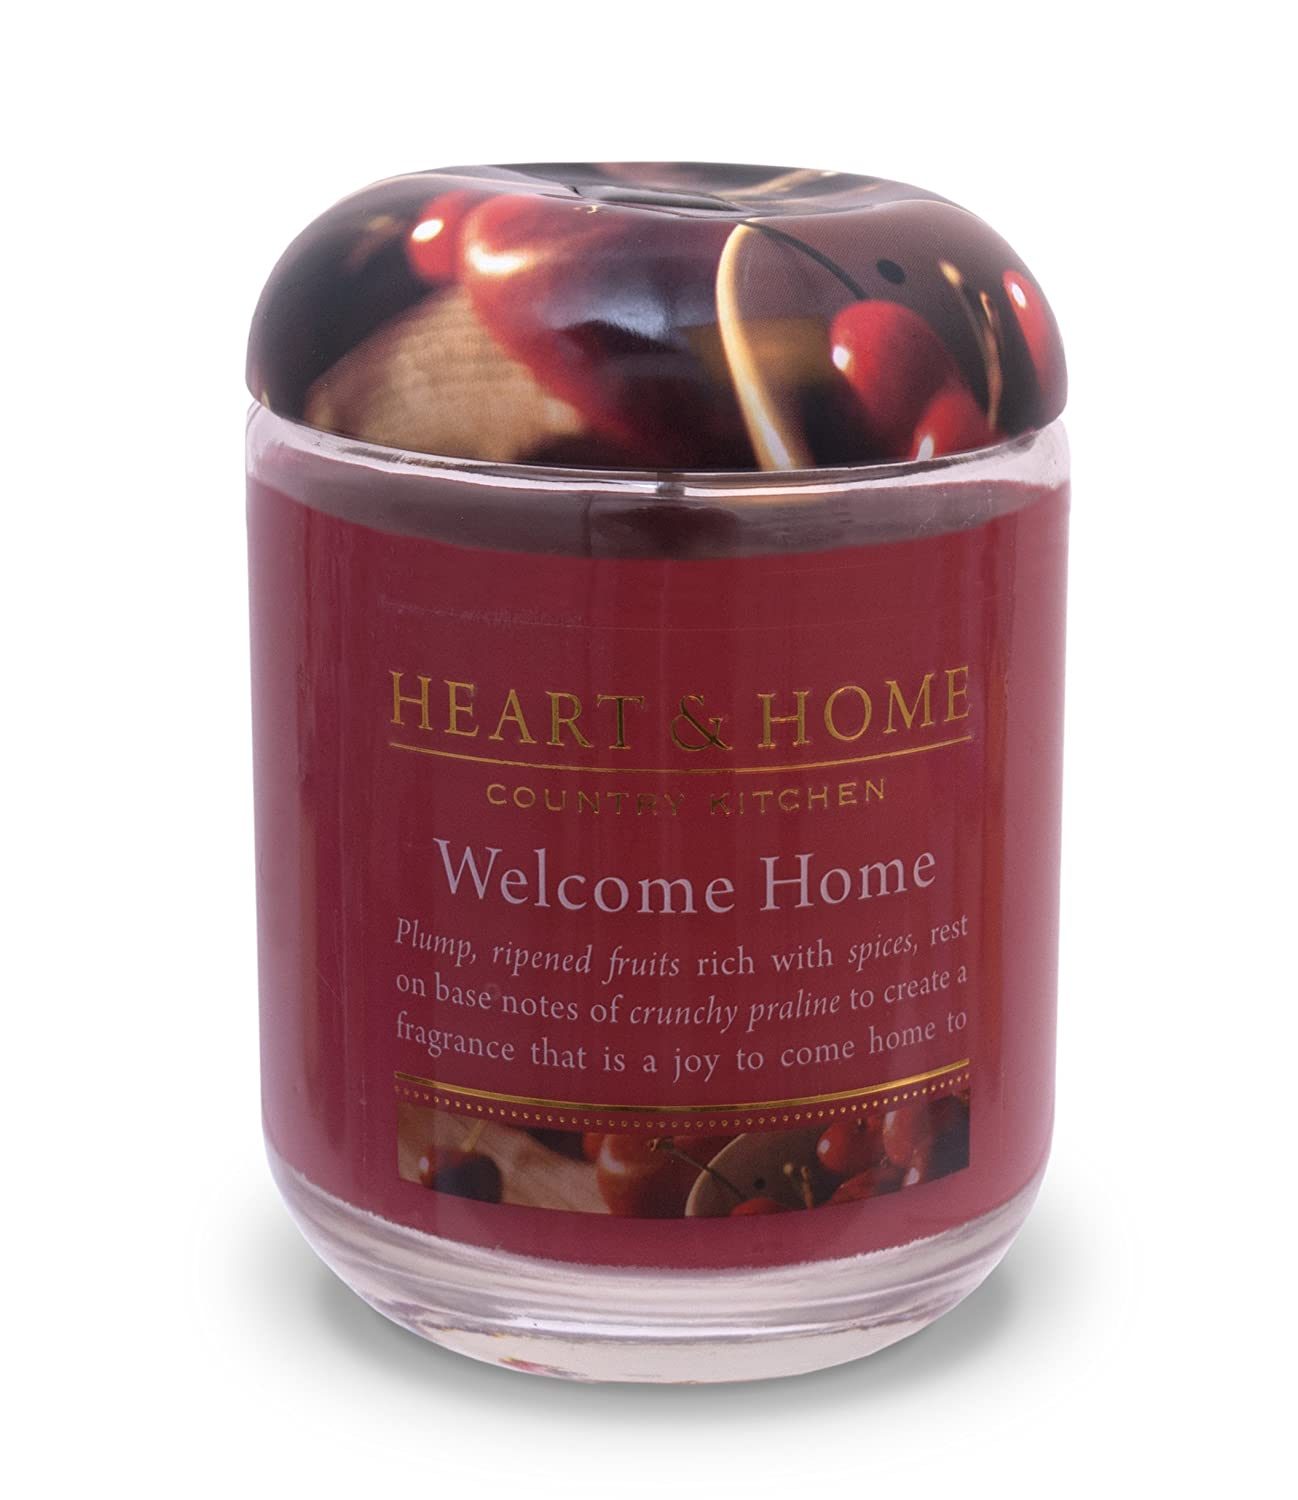 Heart & Home Large Glass Welcome Home Candle History & Heraldry 00275000206